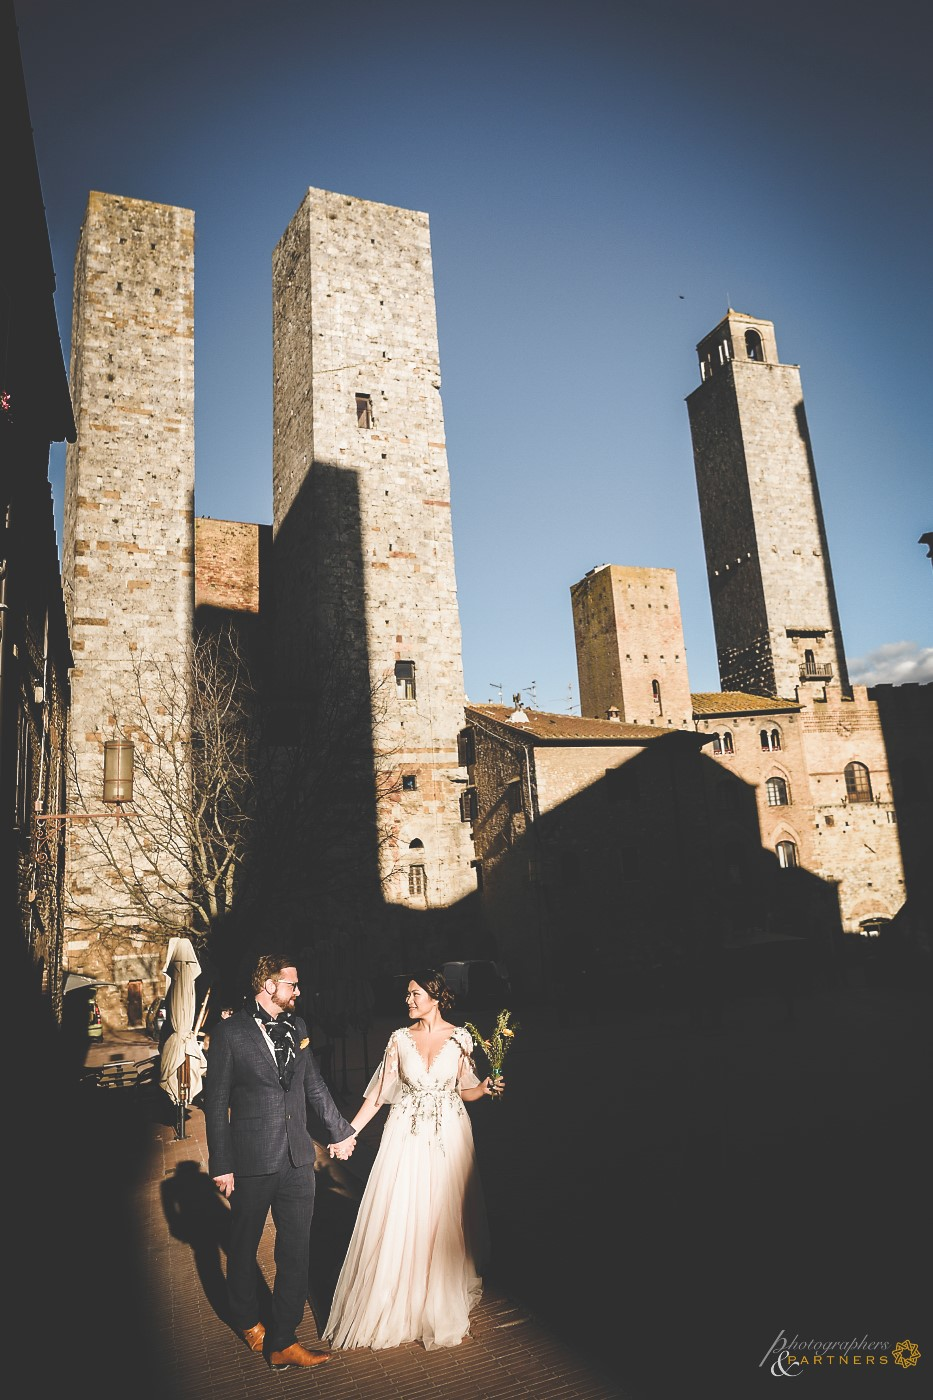 The magnificent towers of San Gimignano